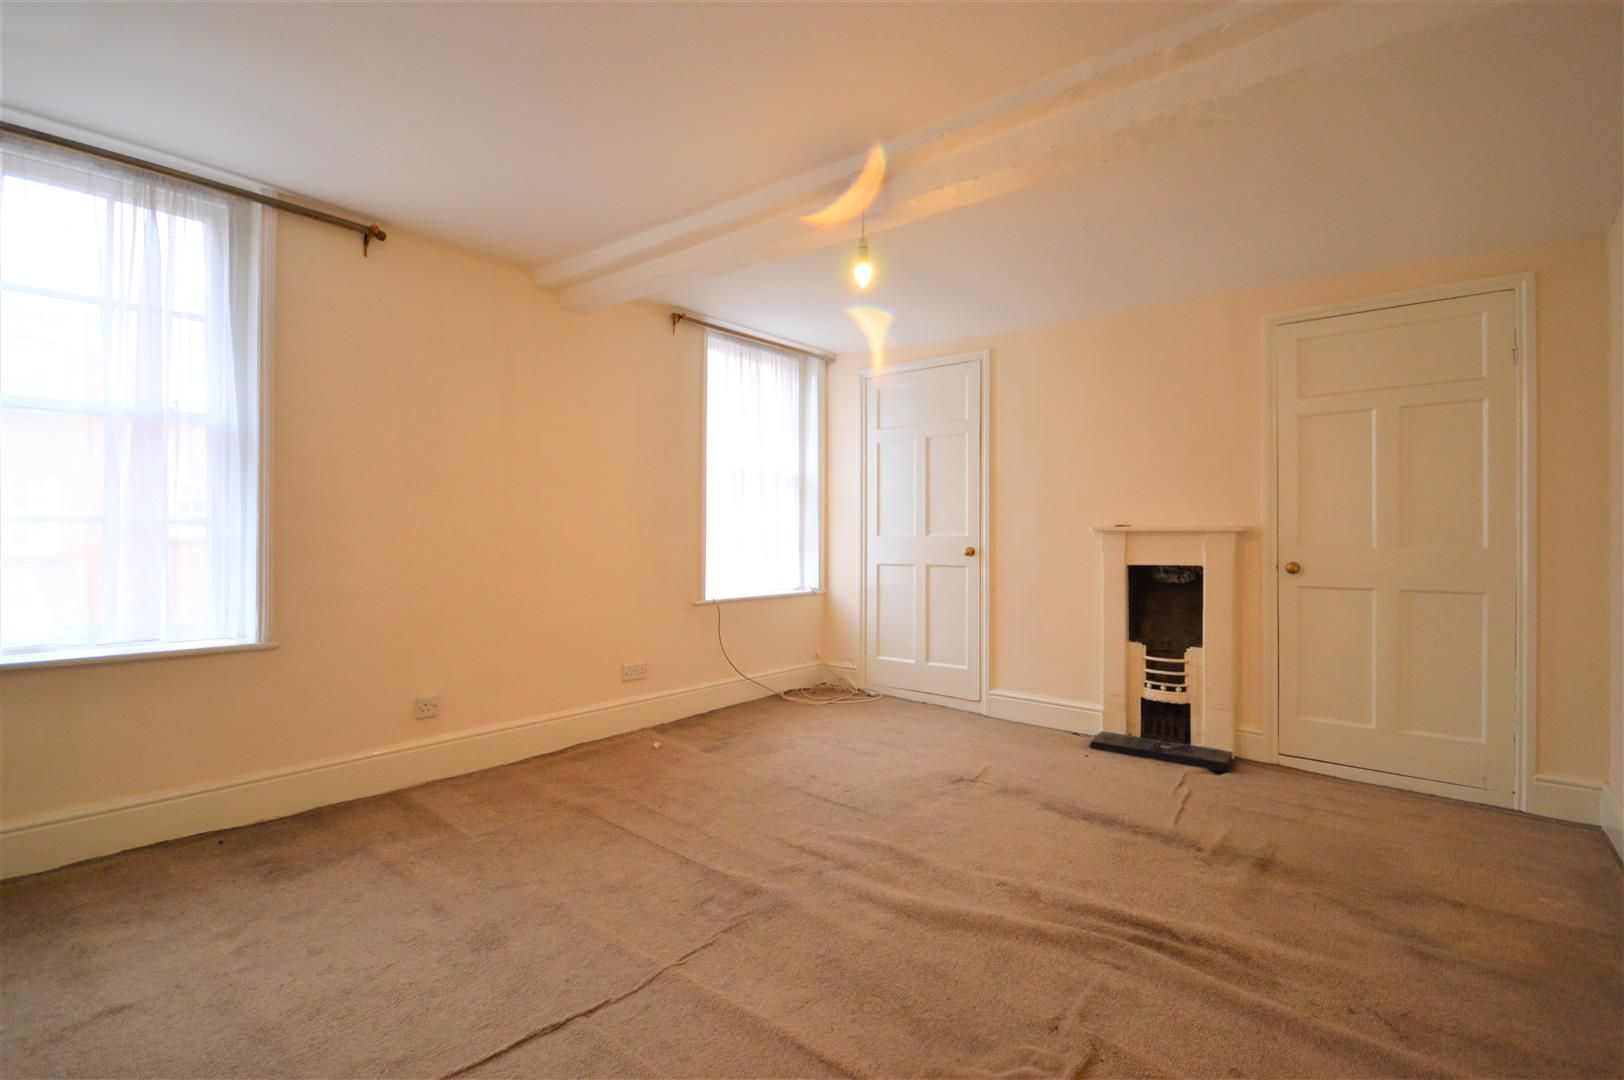 4 bed terraced for sale in Leominster 6